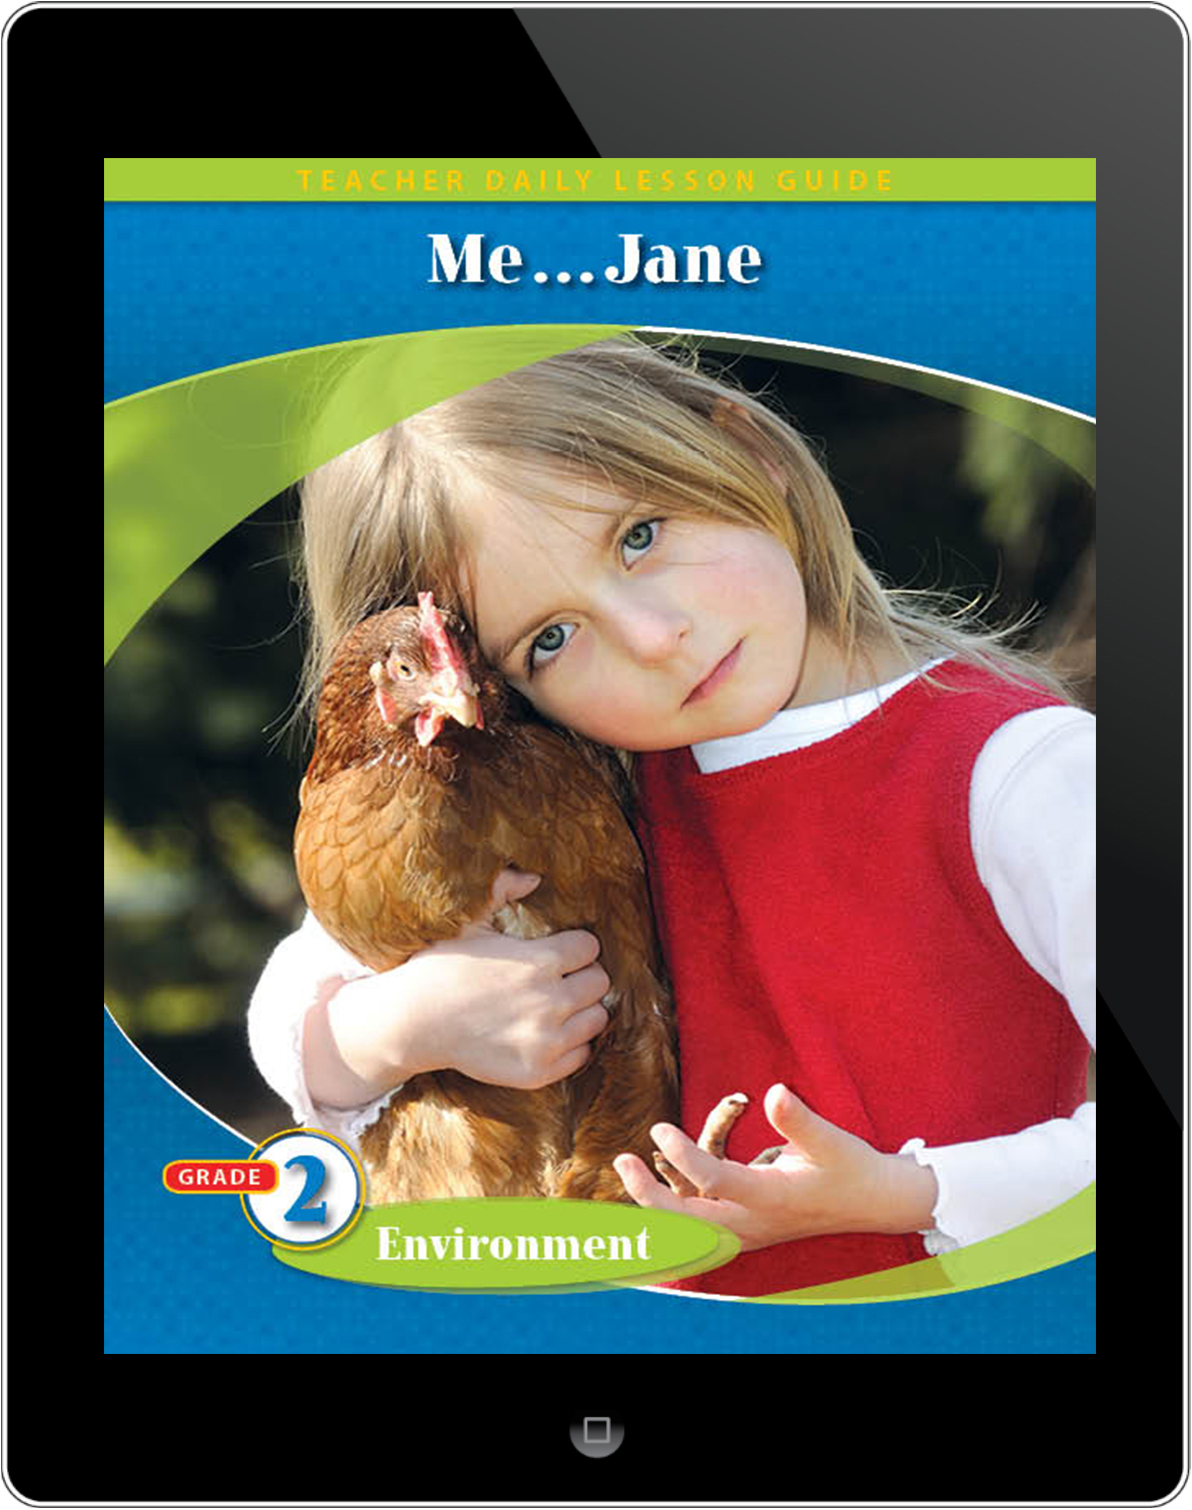 Pathways2.0 Grade 2 Environment Unit: Me...Jane Daily Lesson Guide 5 Year License